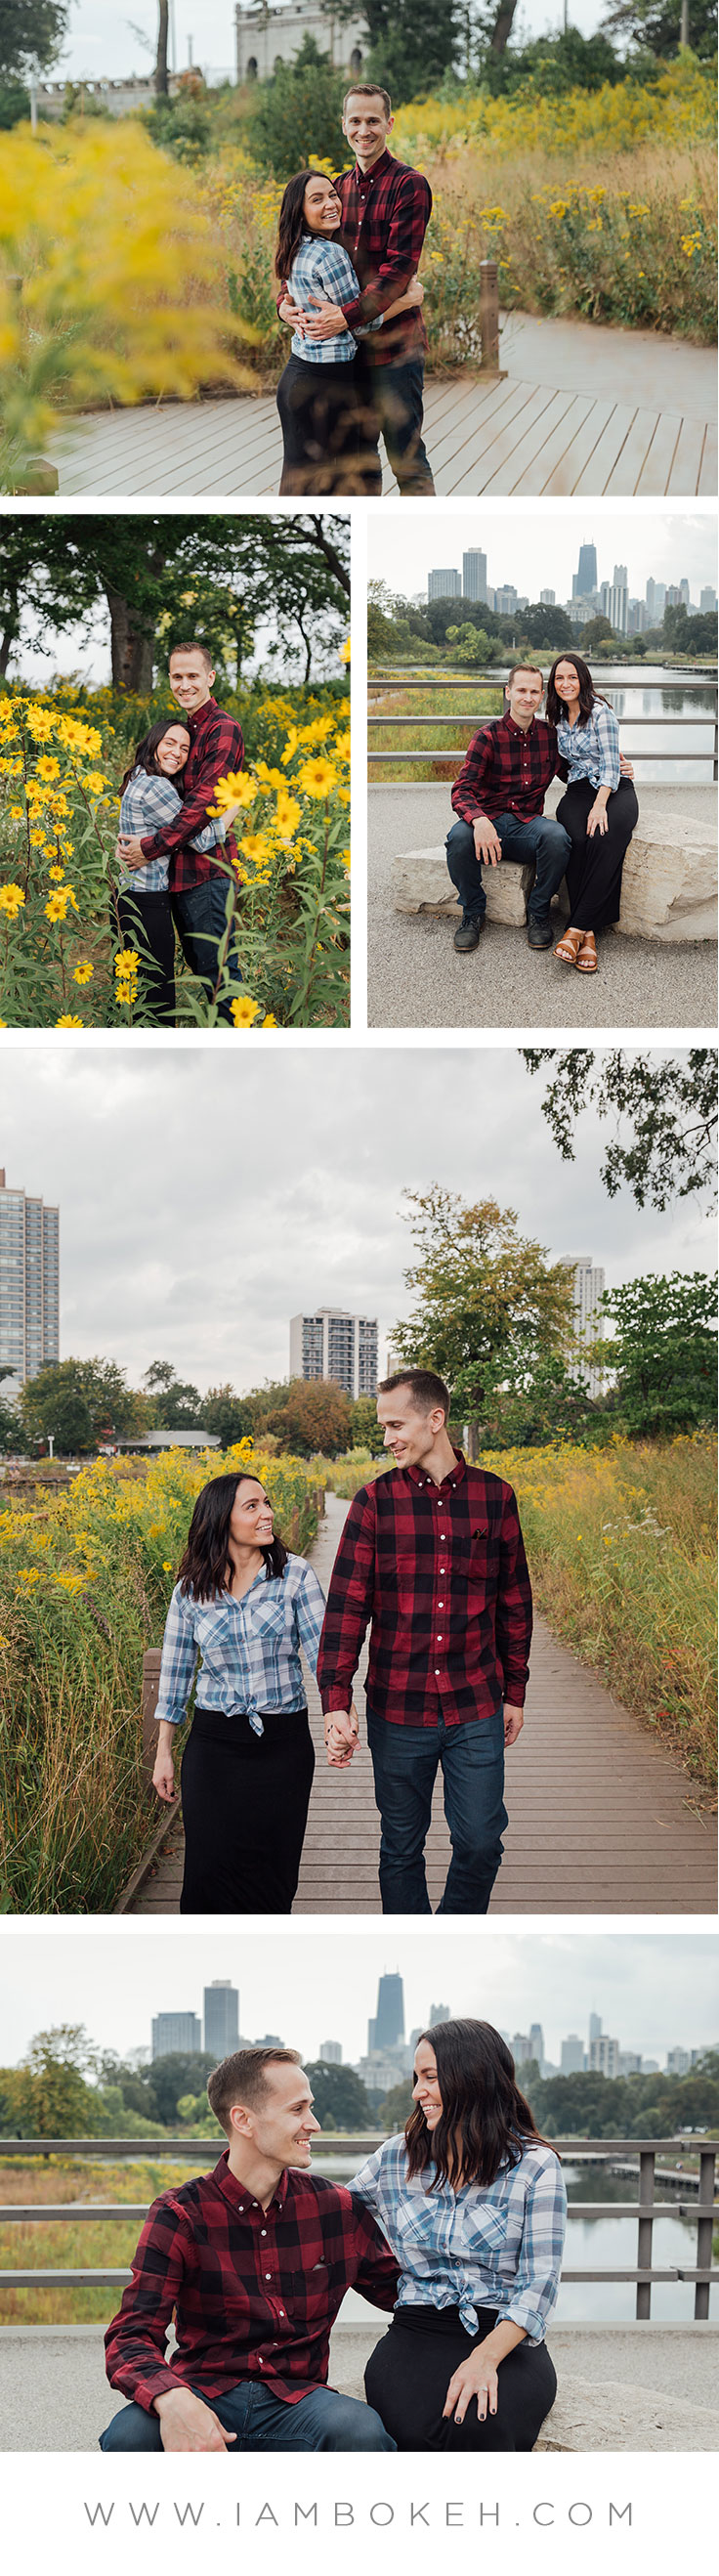 Bokéh Studios | Engagement Shoot in Lincoln Park: Bill & Rachel